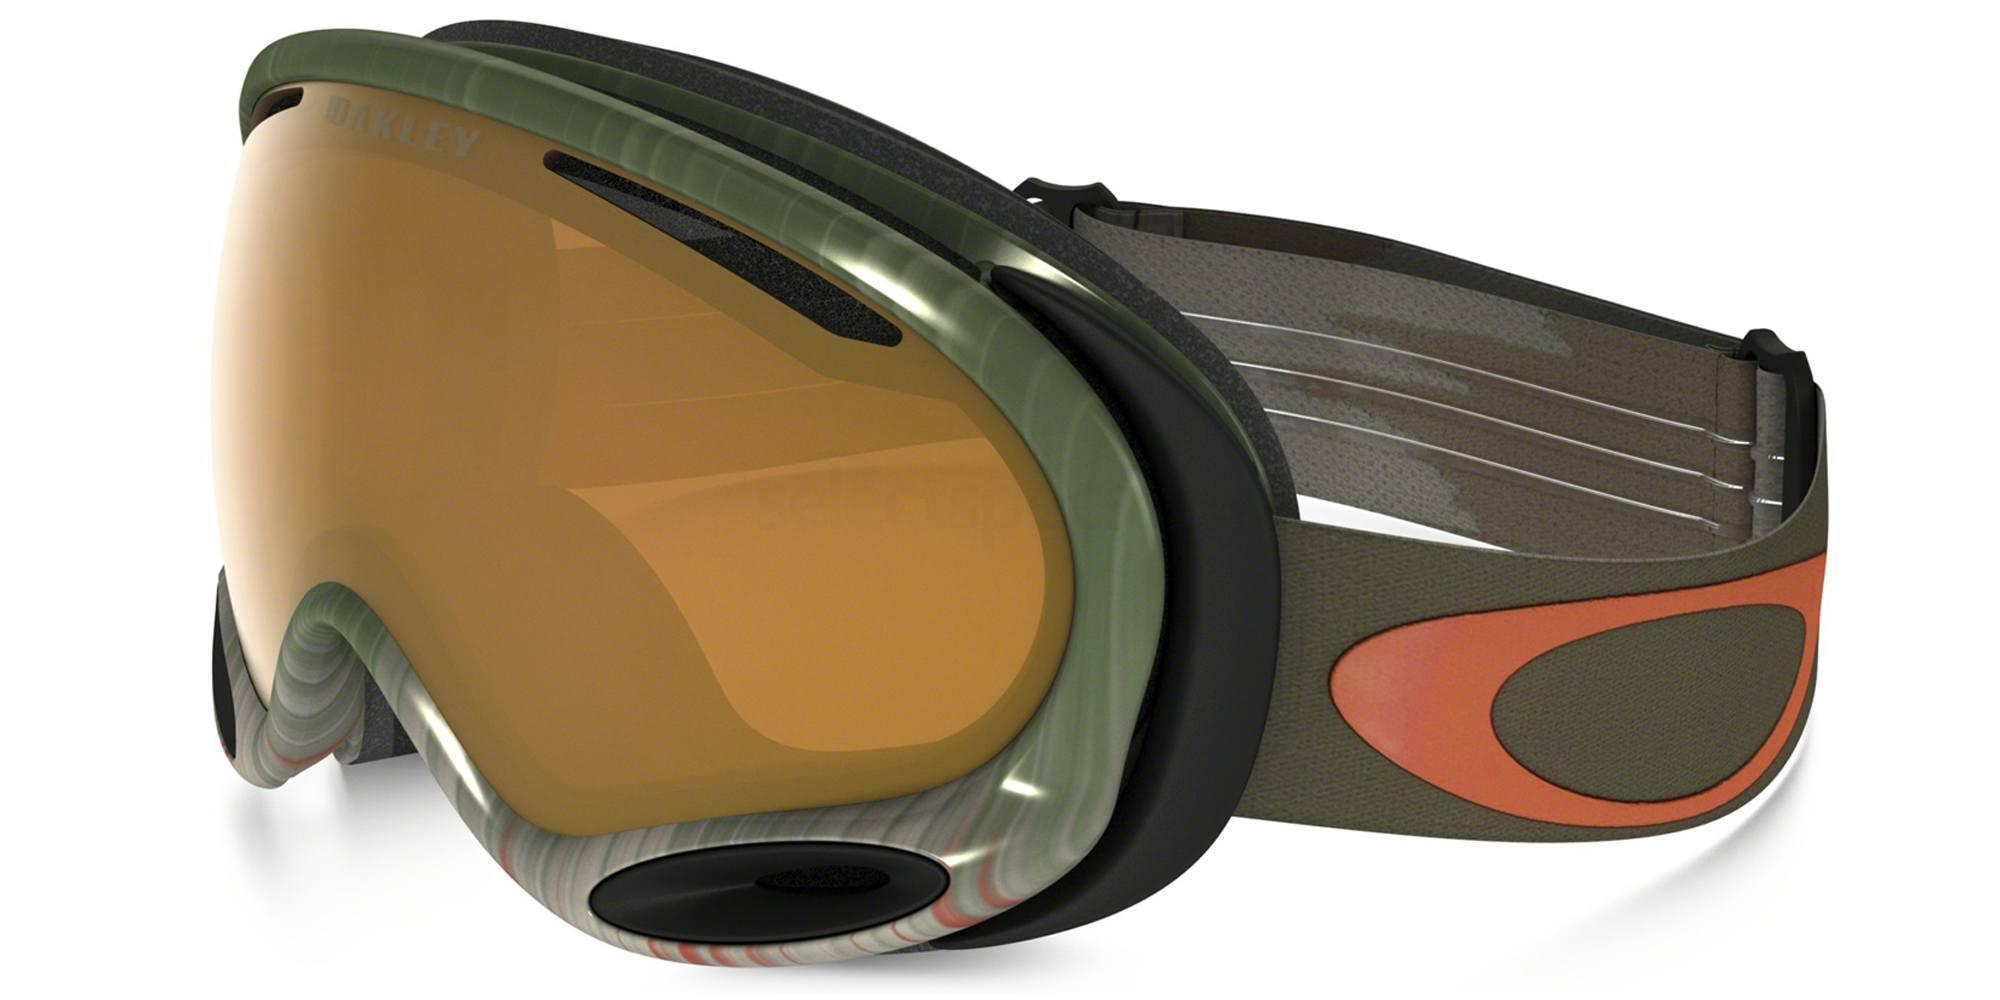 Oakley OO7044 A-FRAME 2.0 goggles